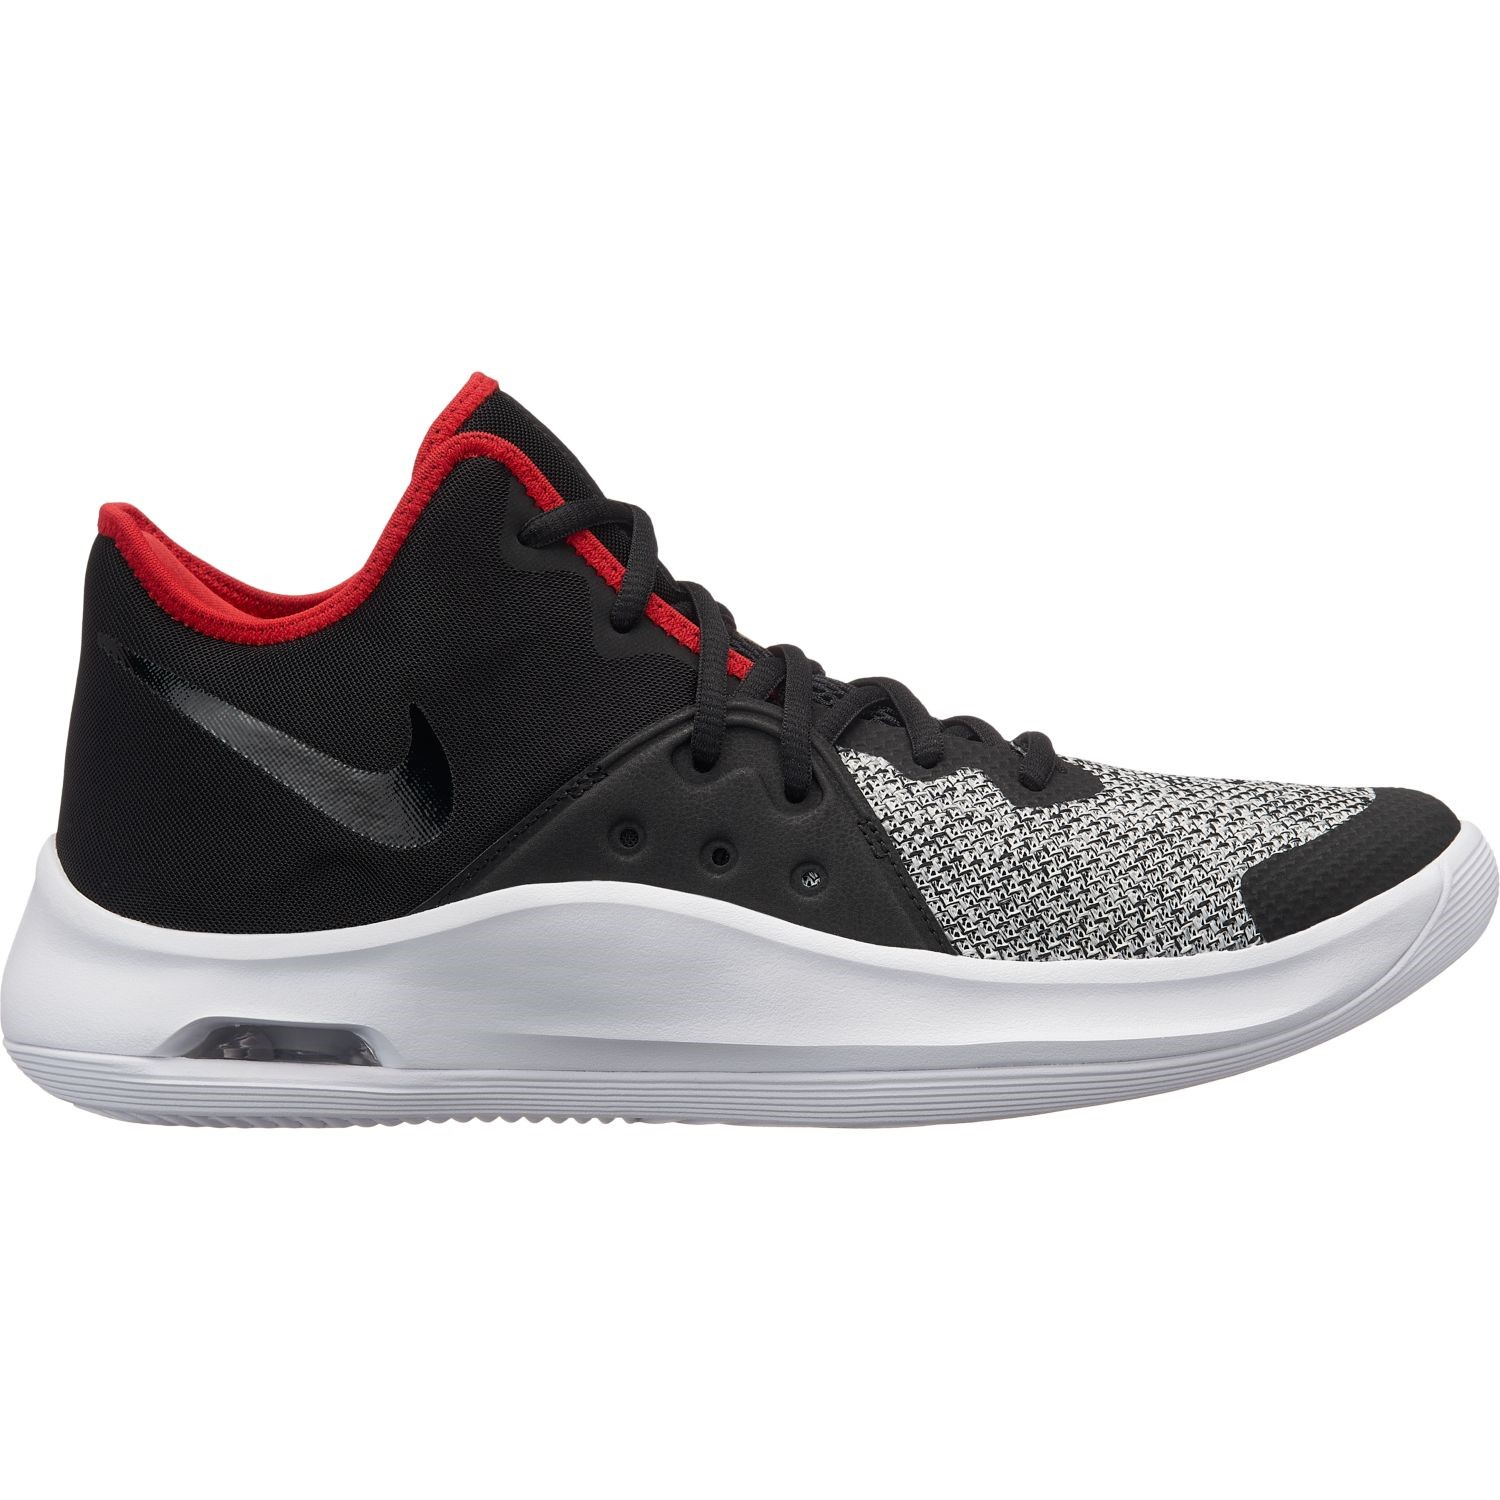 new product 3aa6a 55da6 Nike Air Versatile III - Mens Basketball Shoes - Black White Red